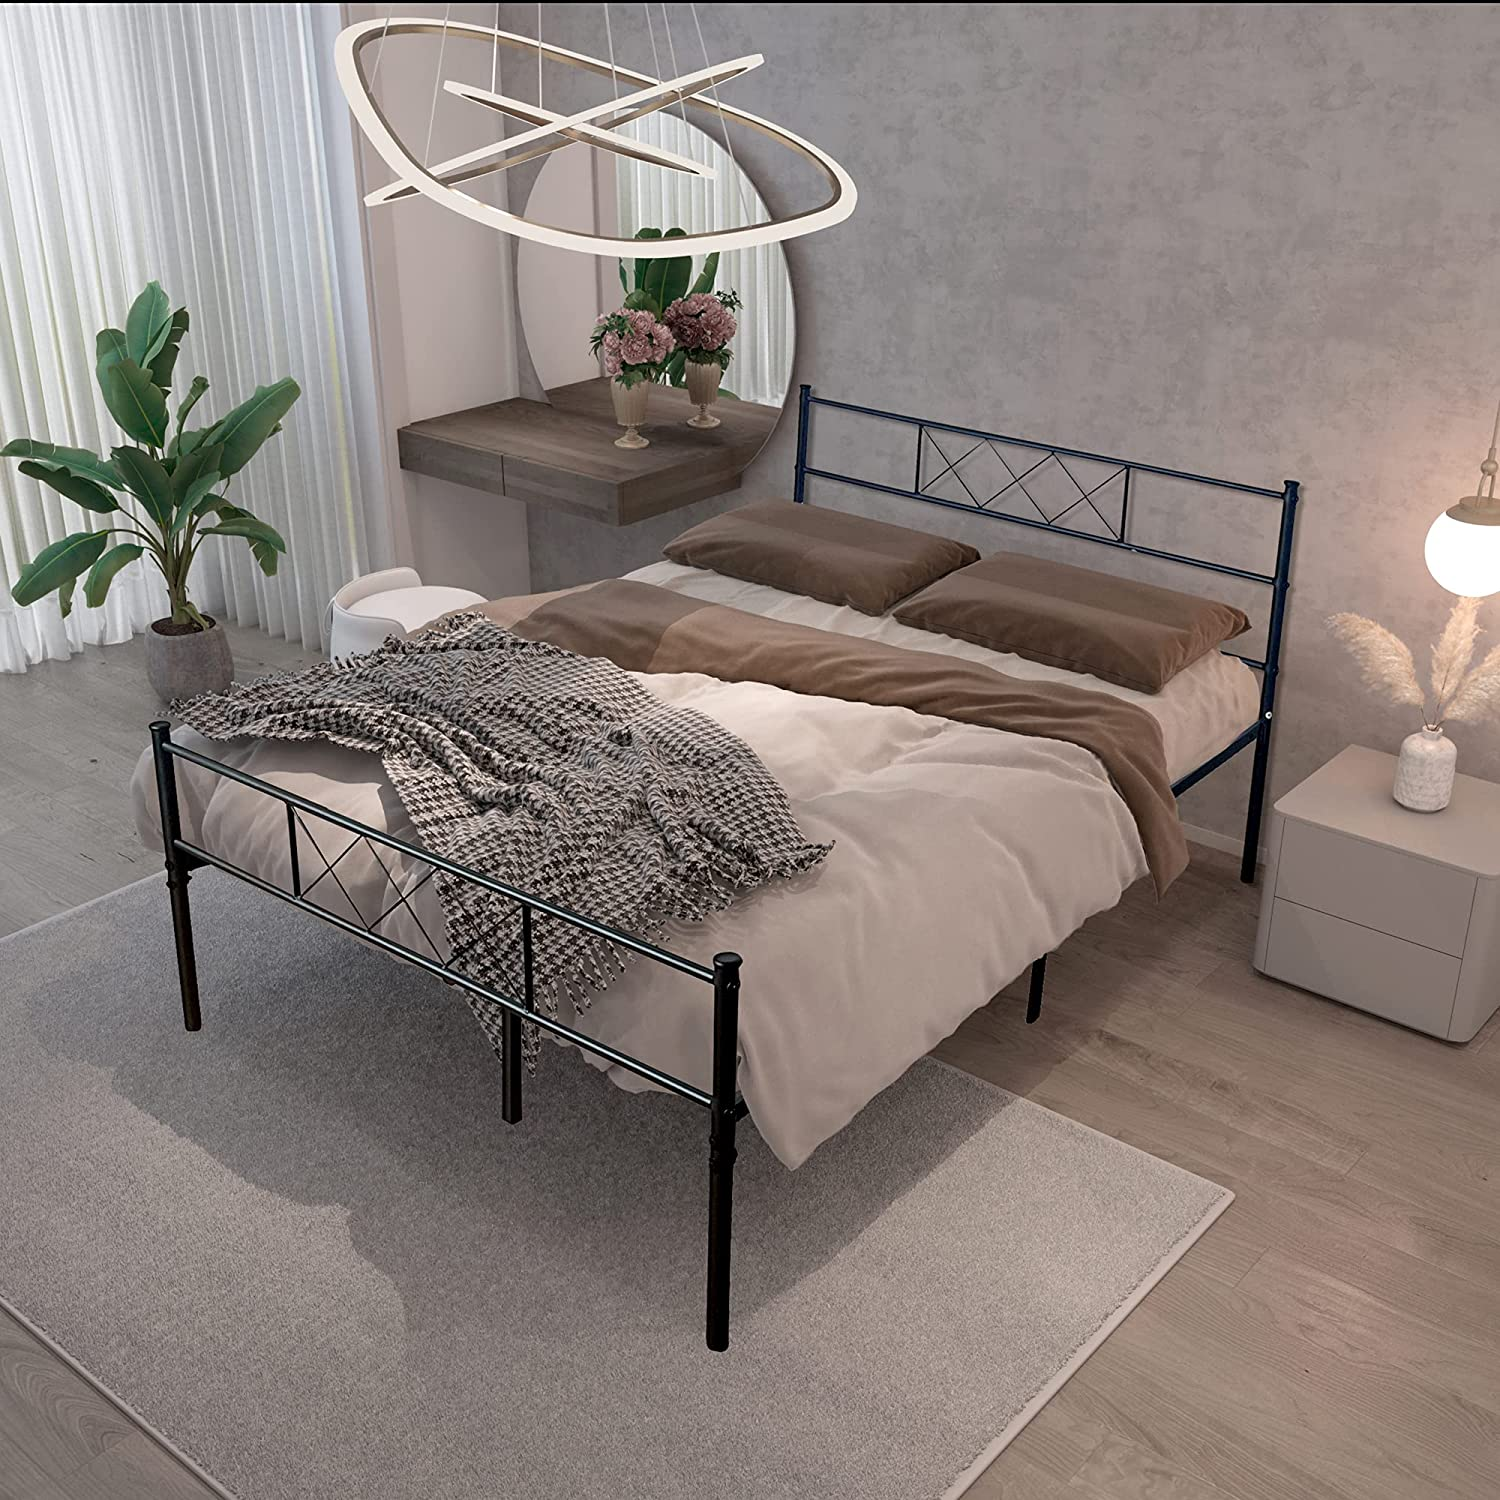 Heavy Duty Metal Bed Frames Full S Underbed Box Ranking TOP18 Sale price No Spring Needed